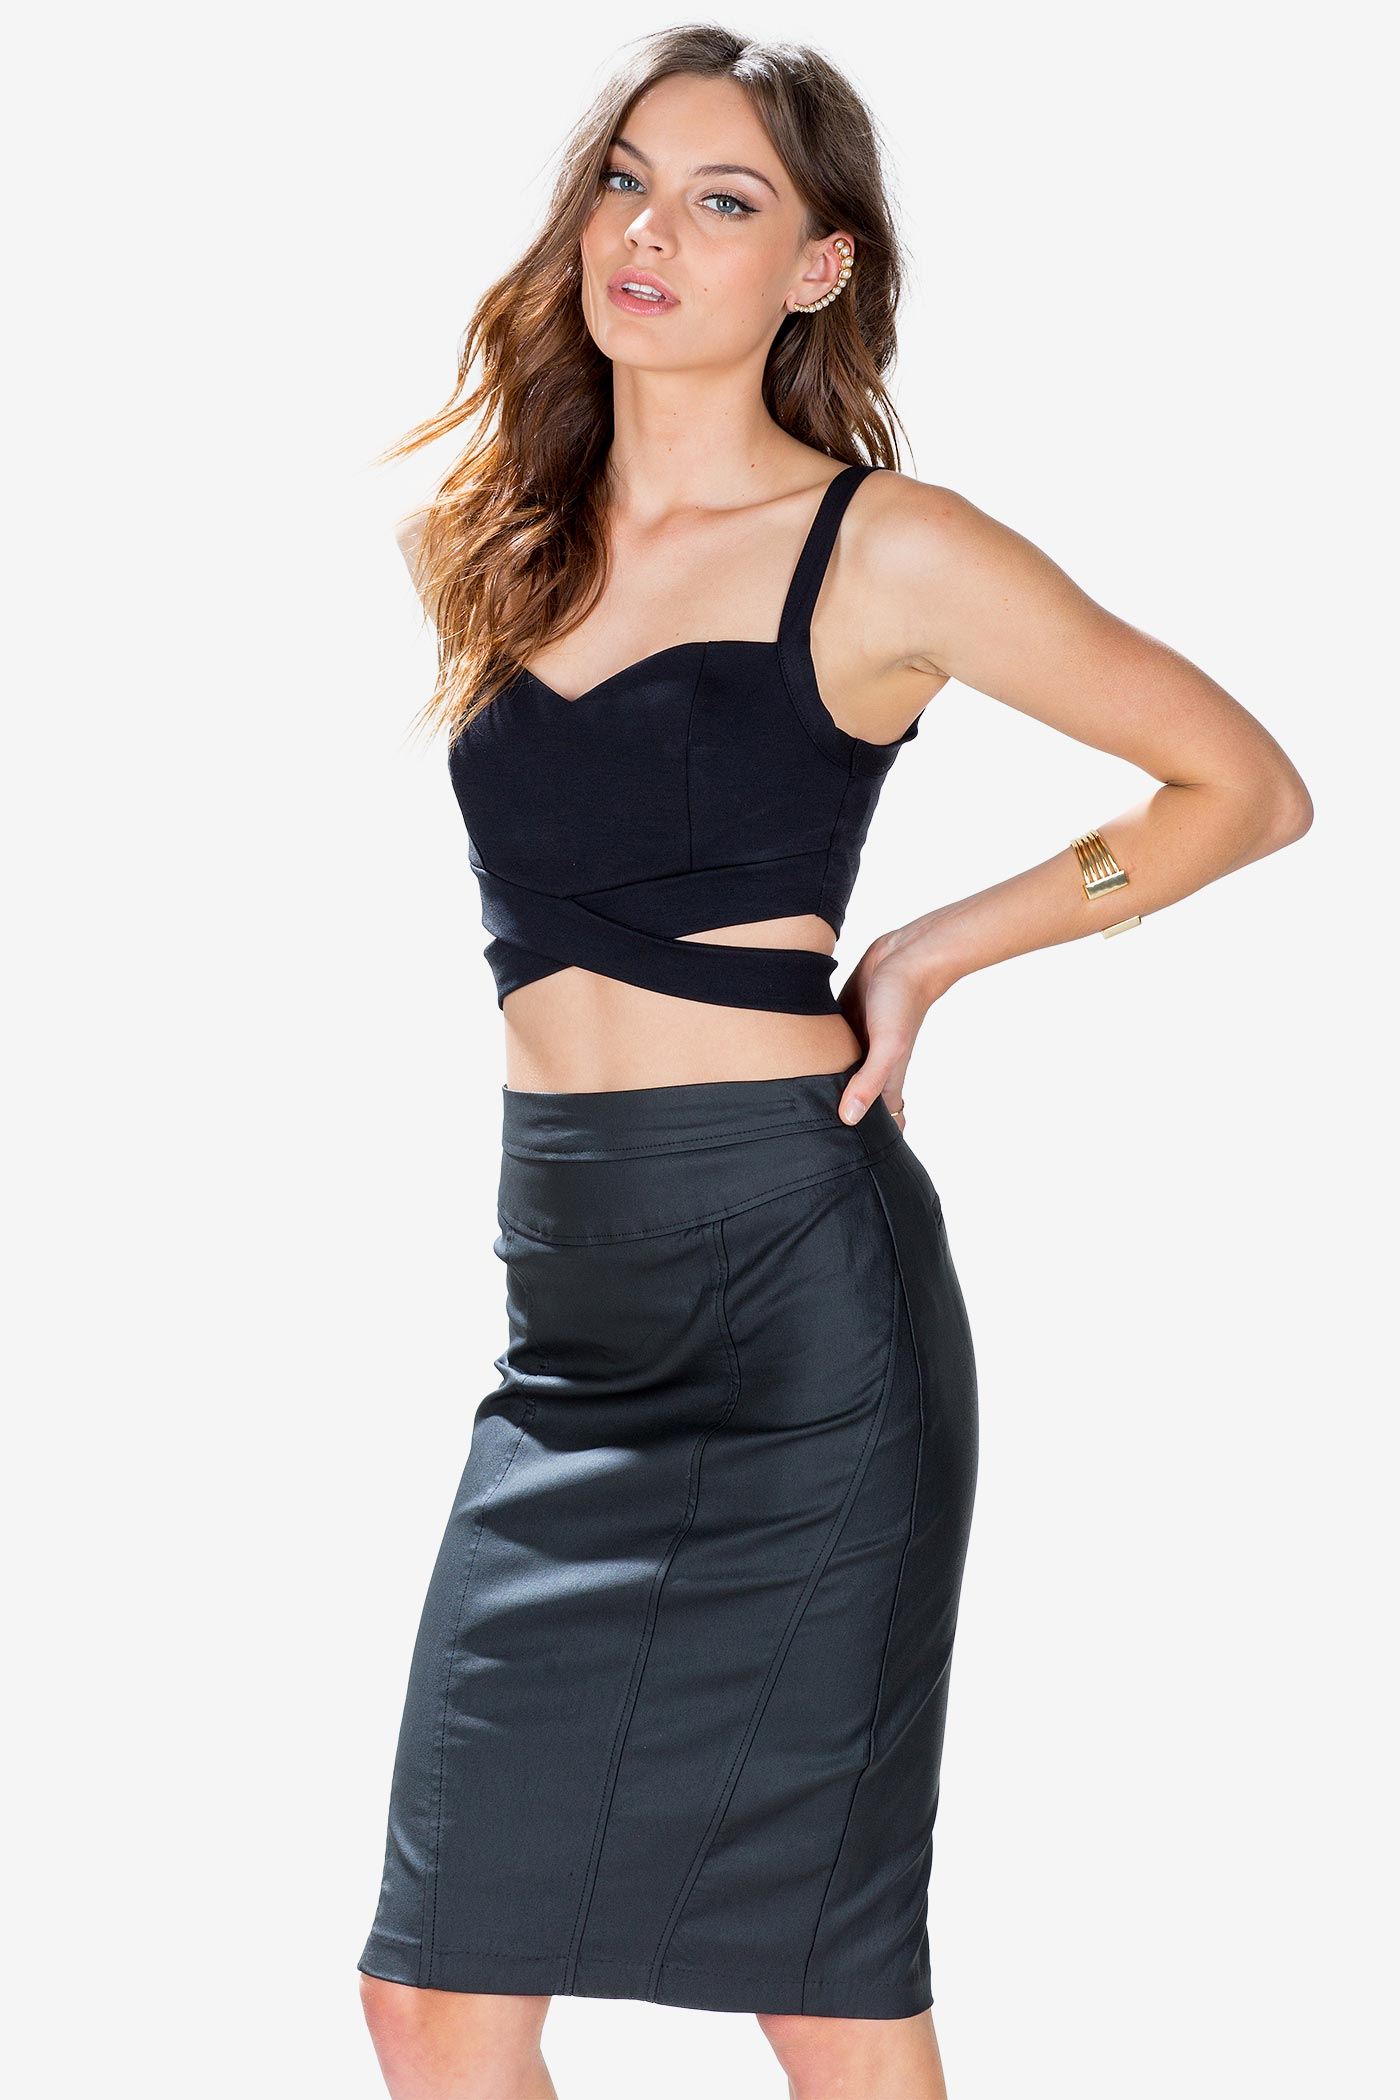 Women's Crop Tops | Chelsea Crop Top | A'GACI